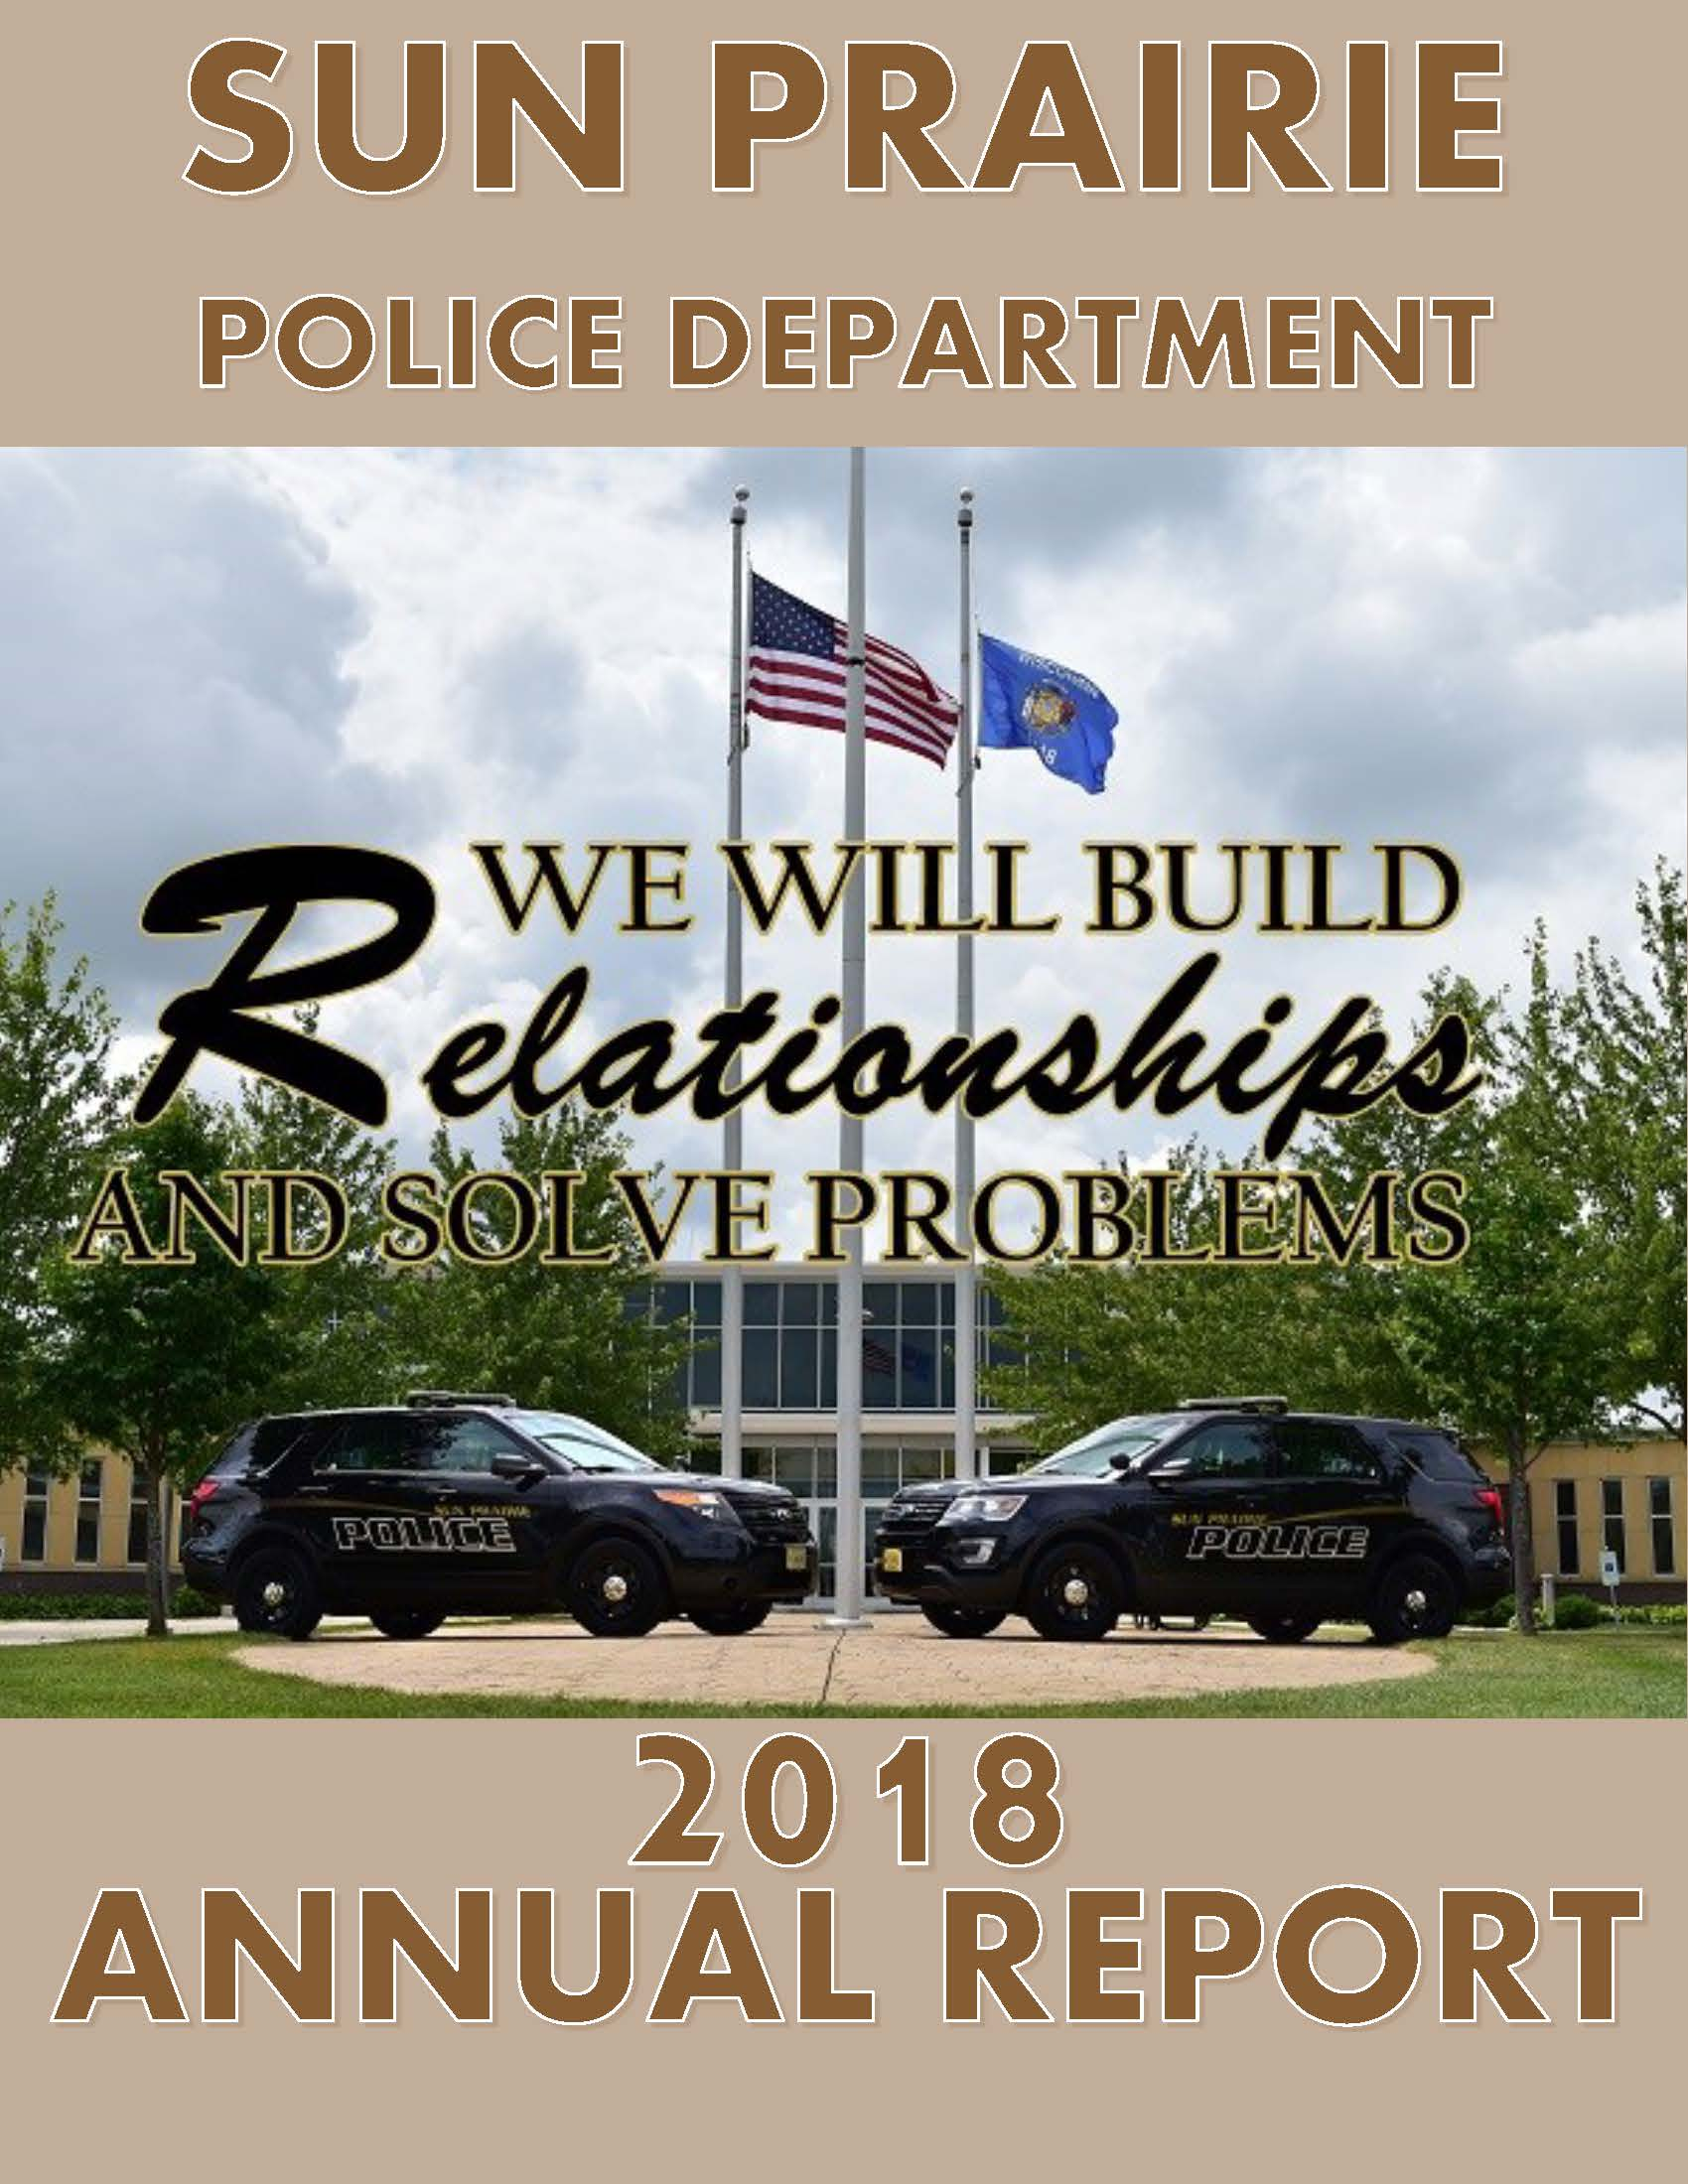 Cover 2018 Sun Prairie Police Annual Report Opens in new window